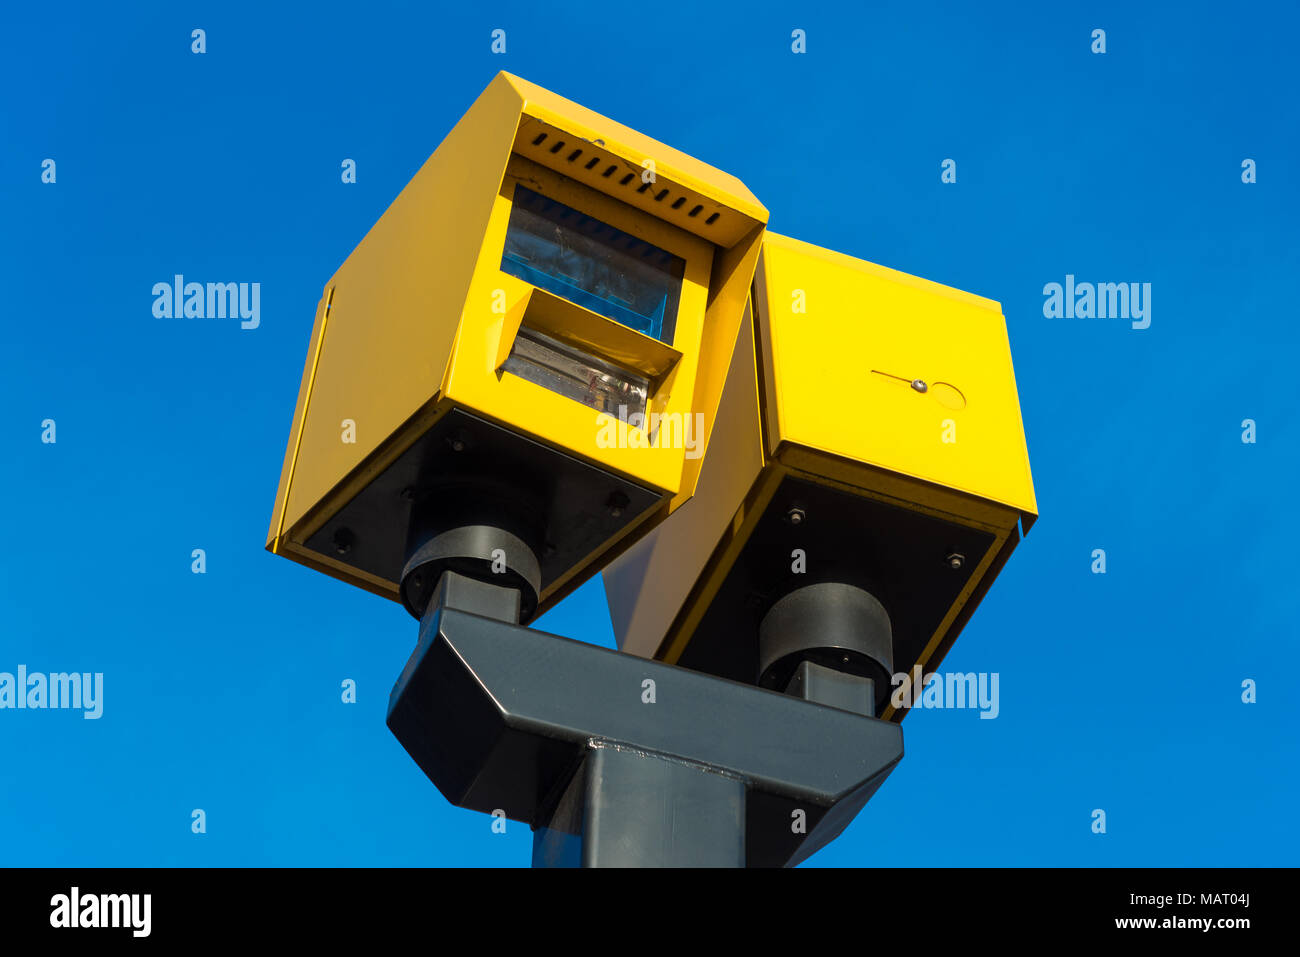 CCTV road speed cameras, UK, London - Stock Image